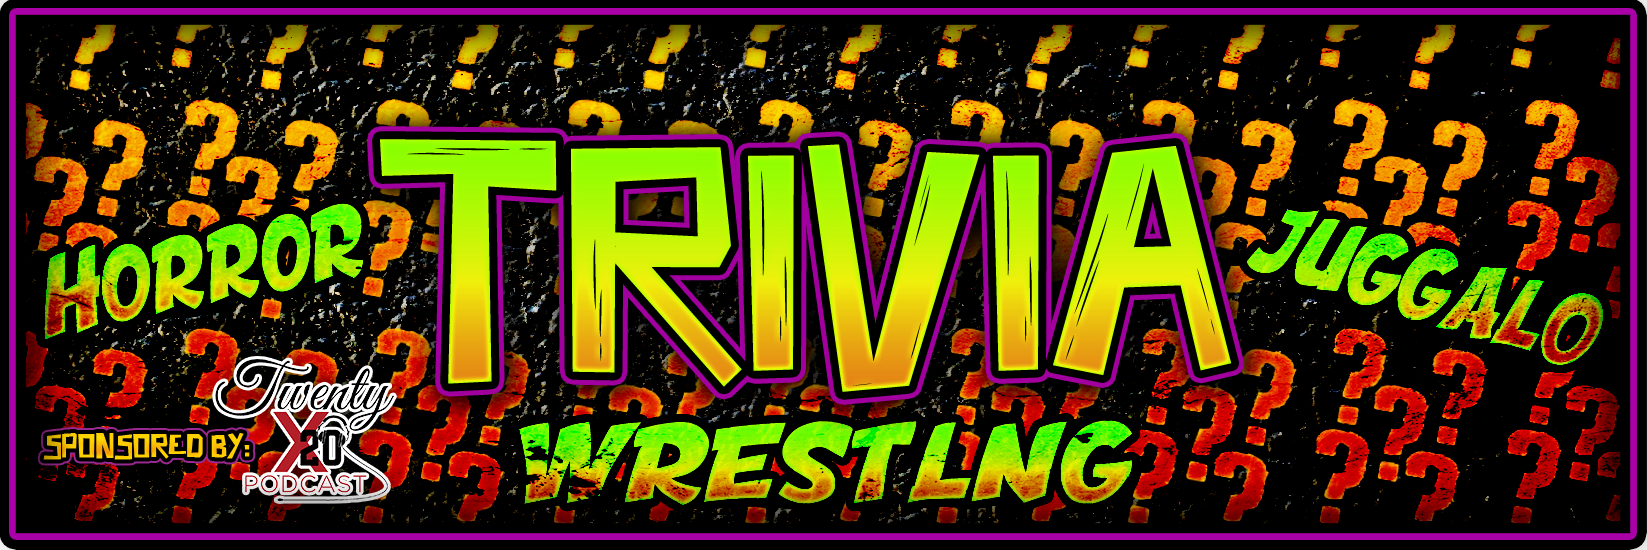 Astronomicon 2 Trivia Banner.png